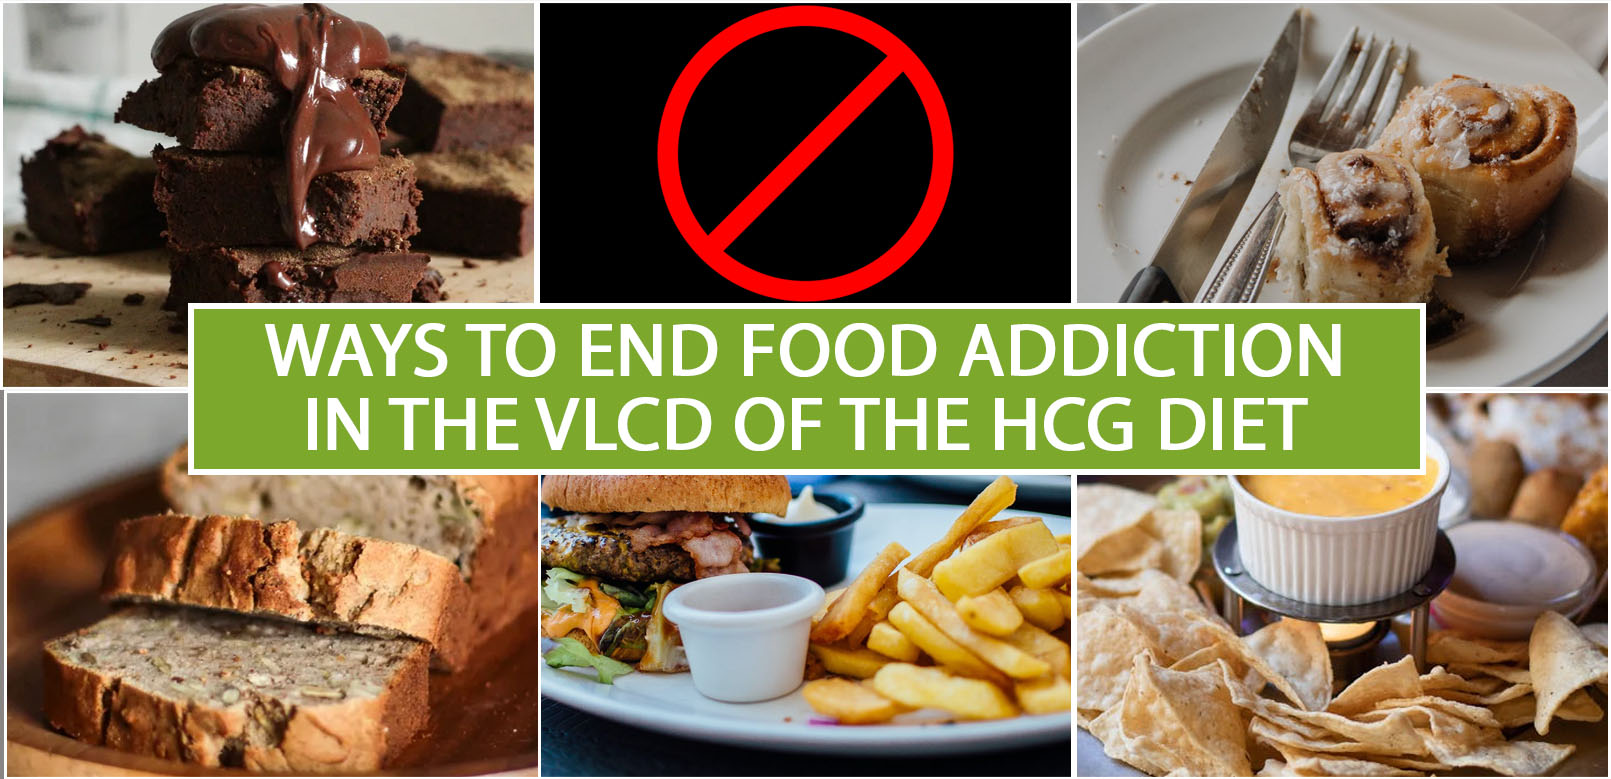 WAYS TO END FOOD ADDICTION IN THE VLCD OF THE HCG DIET